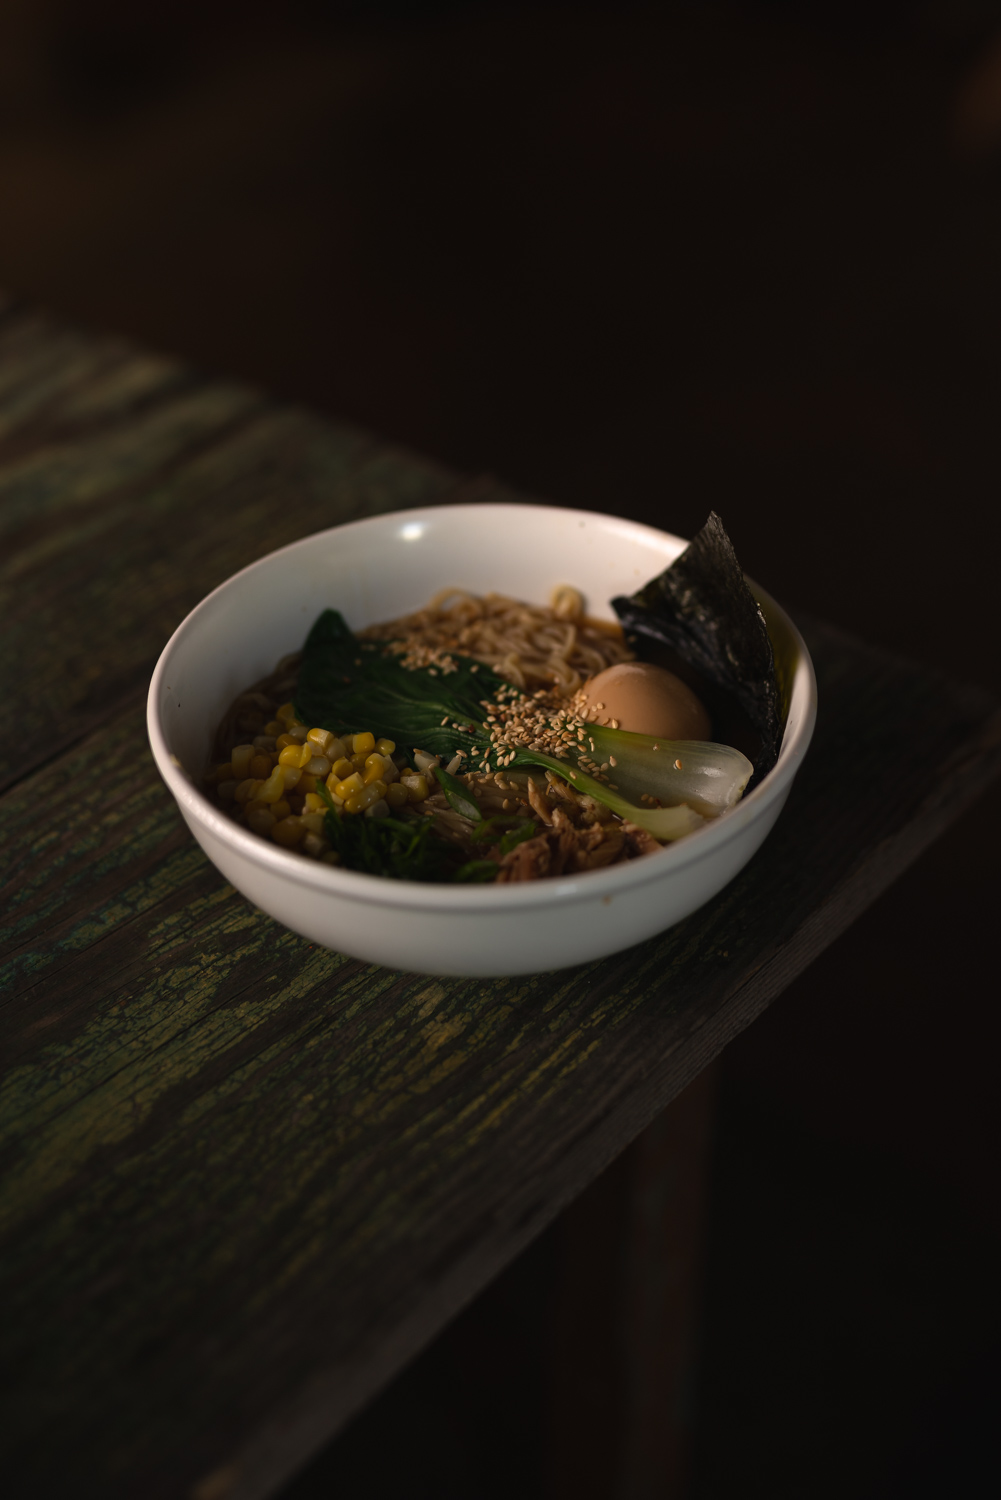 Shio ramen with seaweed, marinated egg, bok choy, corn, chicken, and toasted sesame seeds.